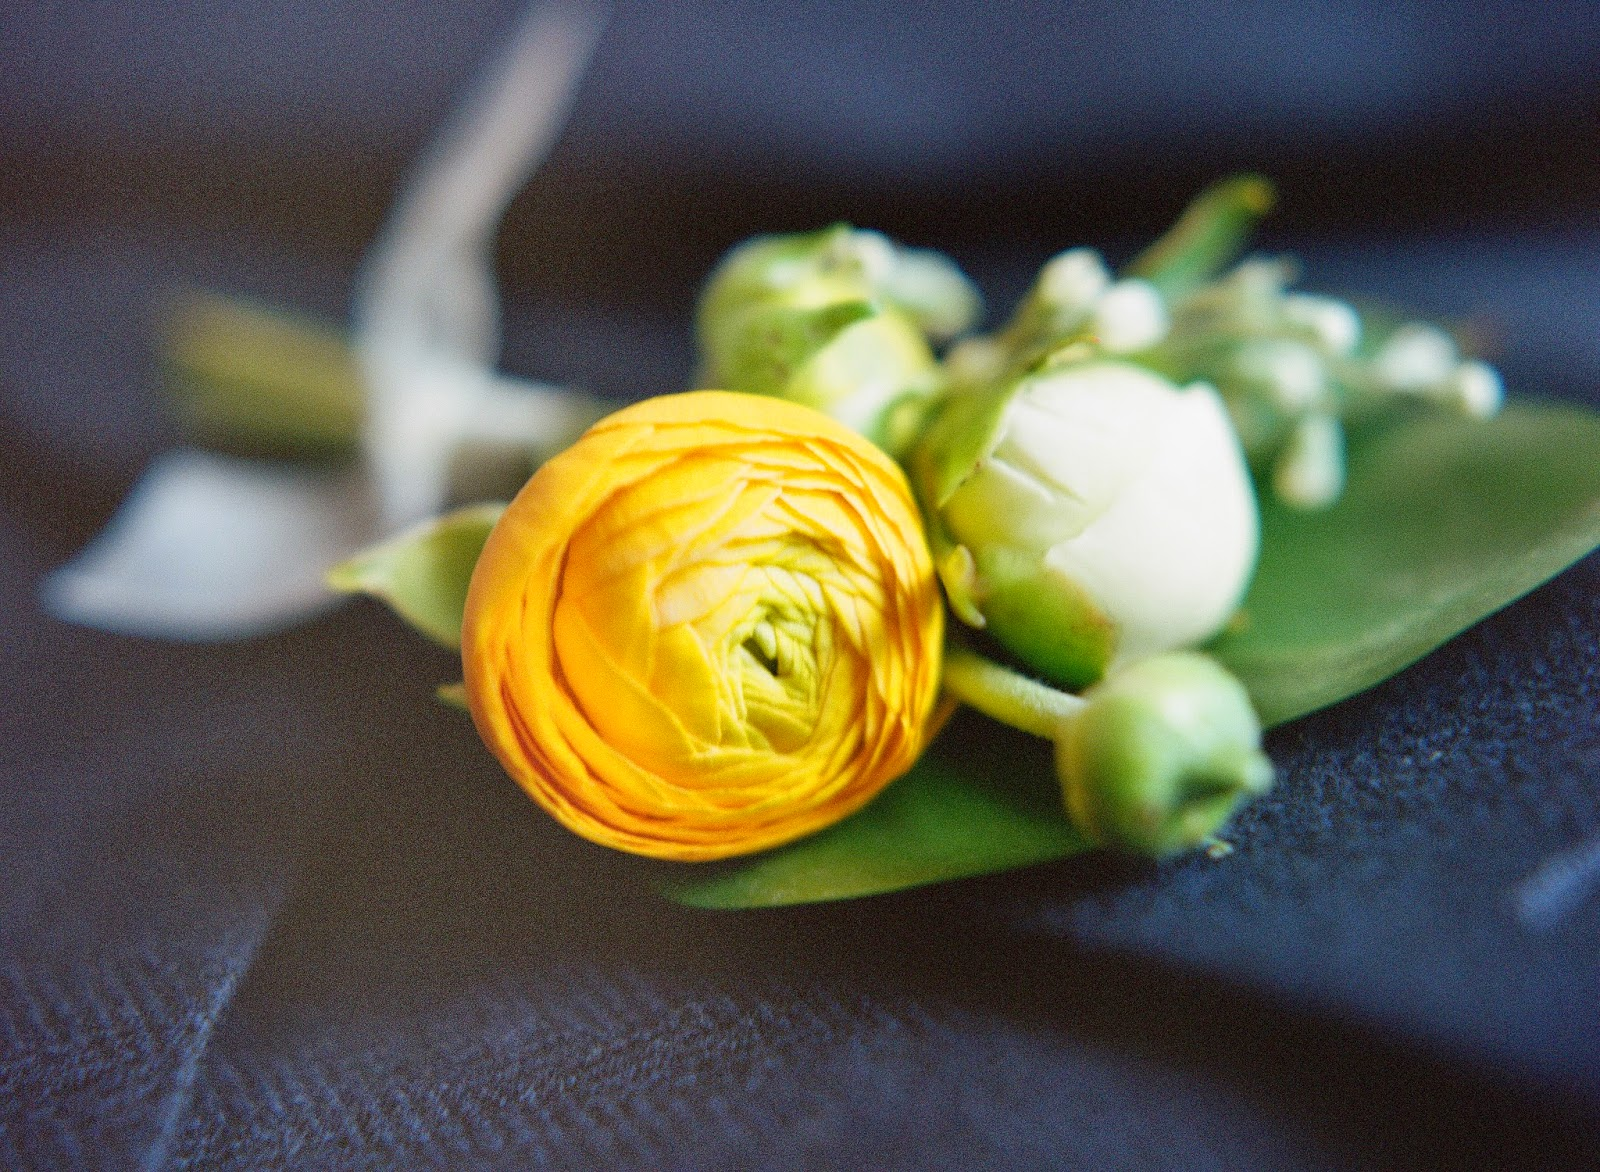 yellow ranunculus and peony boutonniere tied tied with silk against a navy suit coat